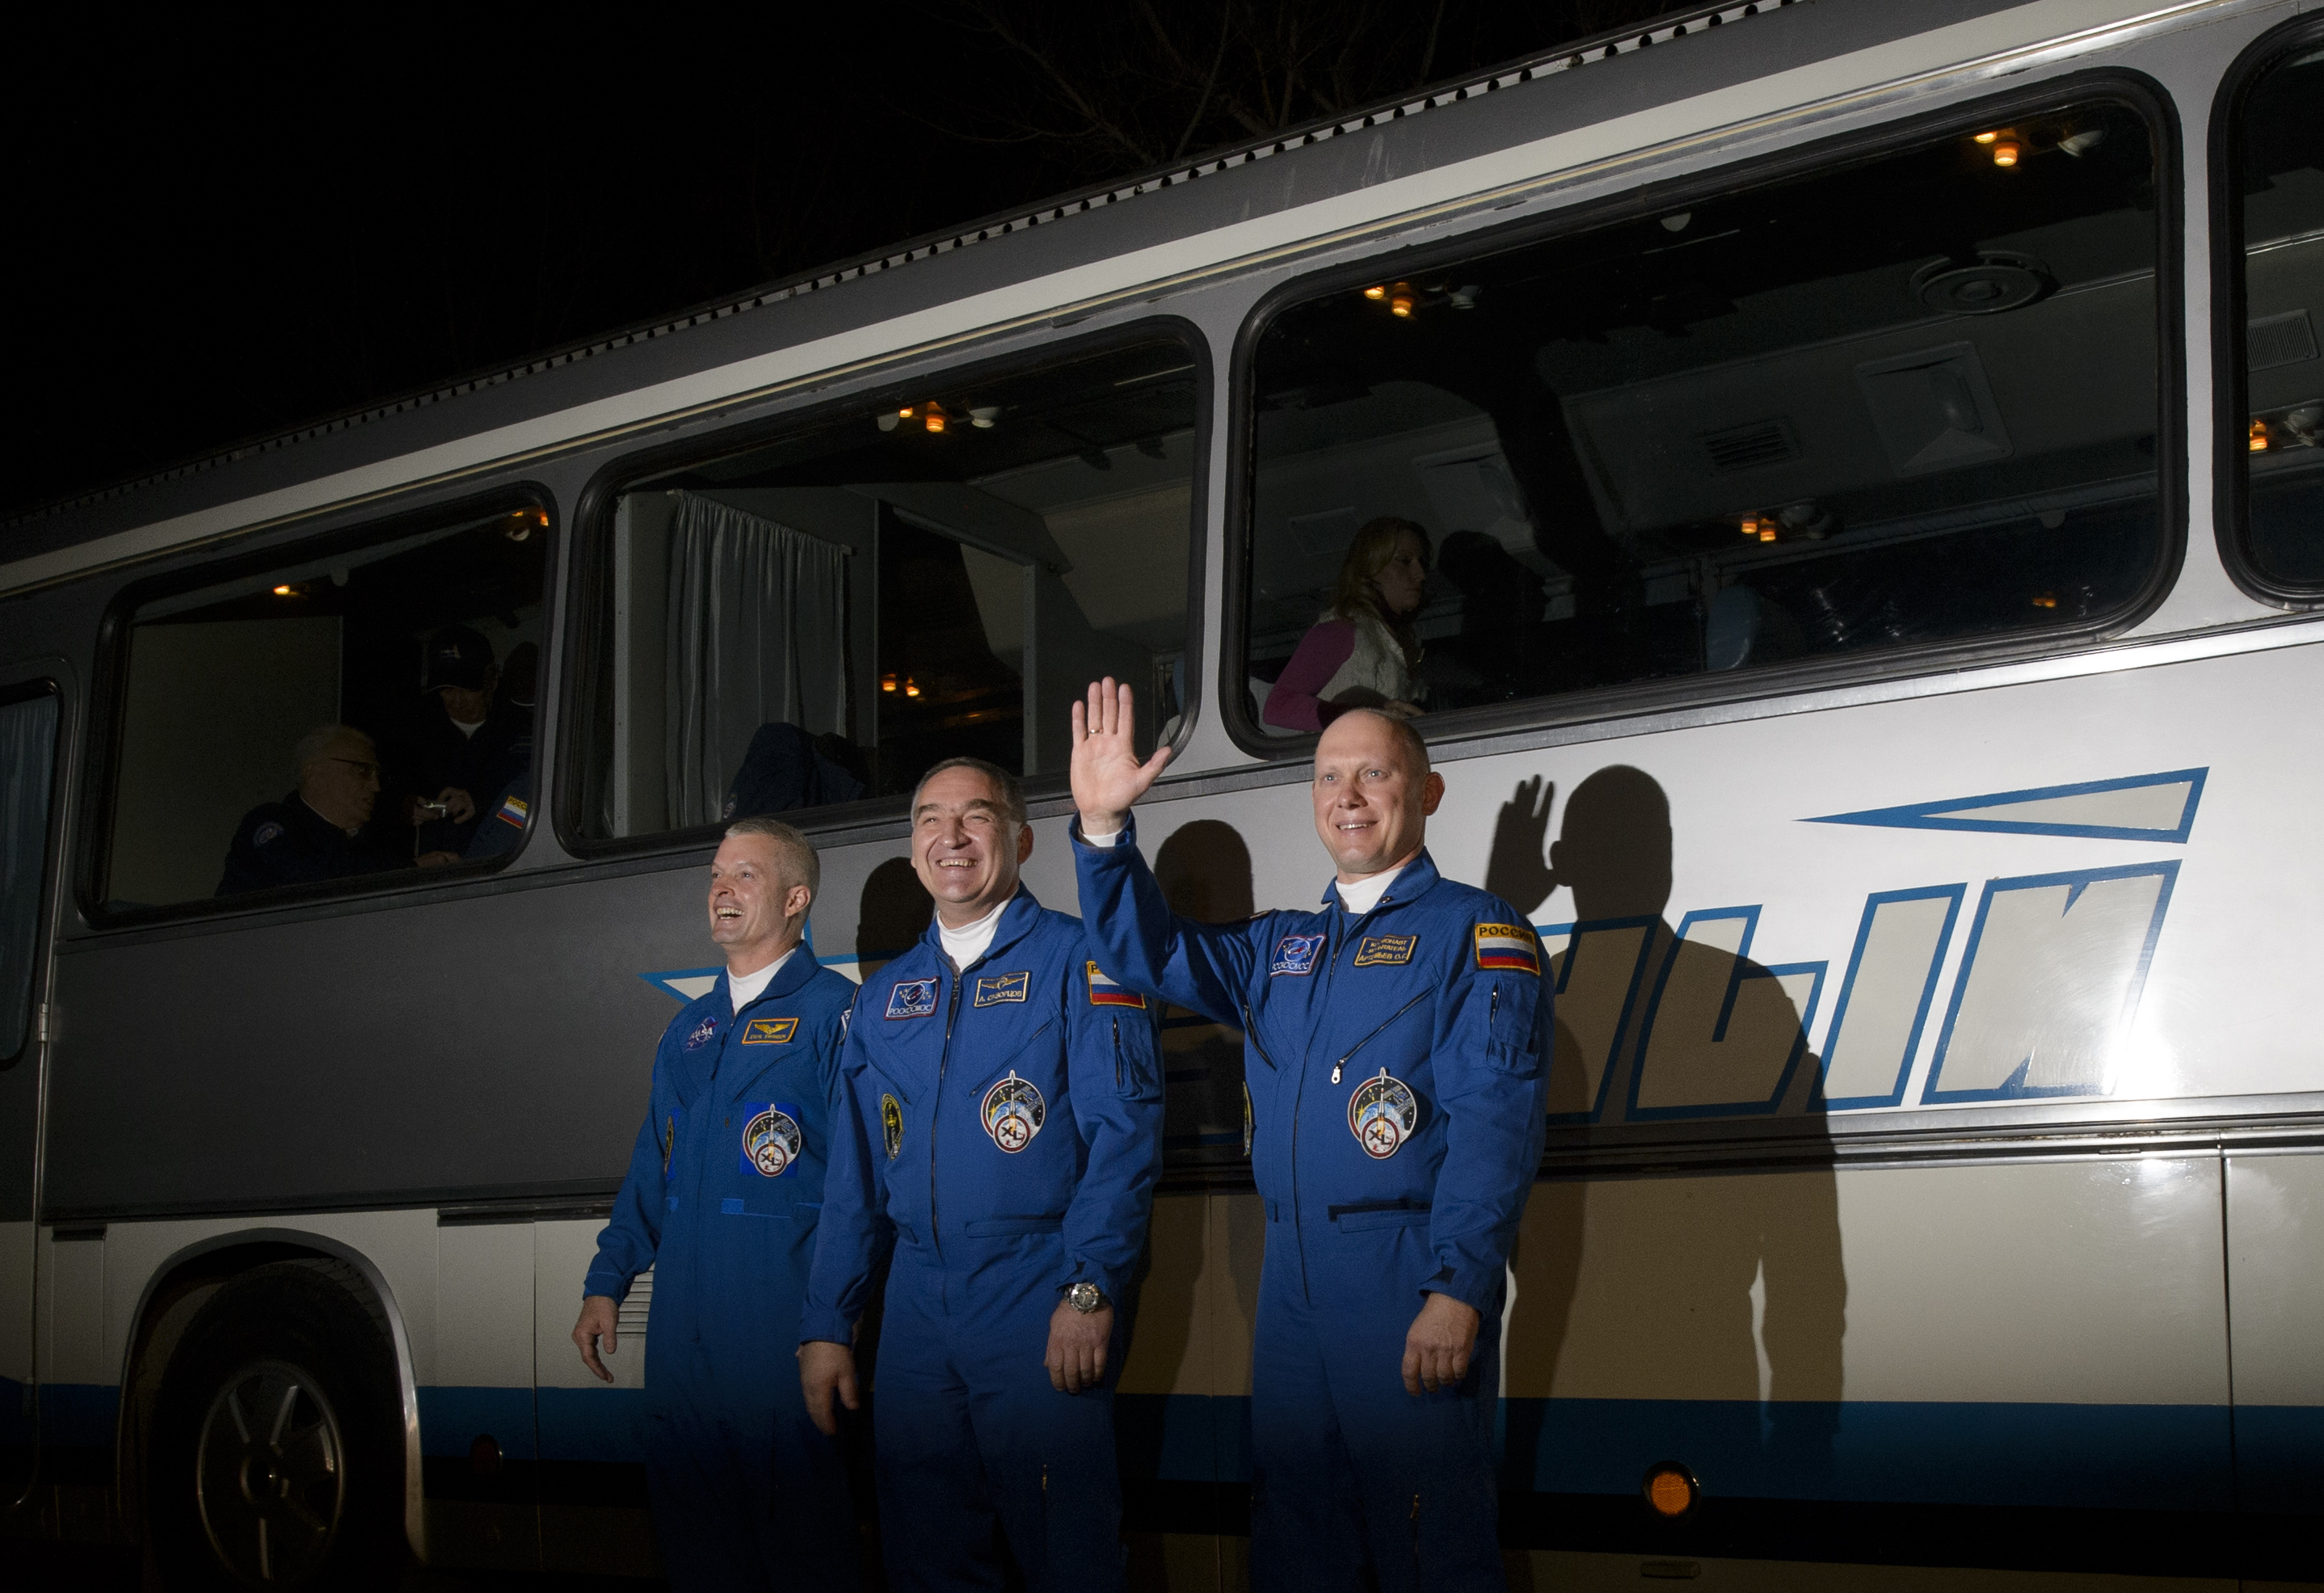 American astronaut Steve Swanson, left, and cosmonauts Alexander Skvortsov and Oleg Artemyev, are seen as they depart the Cosmonaut Hotel, Tuesday, March 25, 2014, in Baikonur, Kazakhstan, prior to their launch aboard a Soyuz rocket